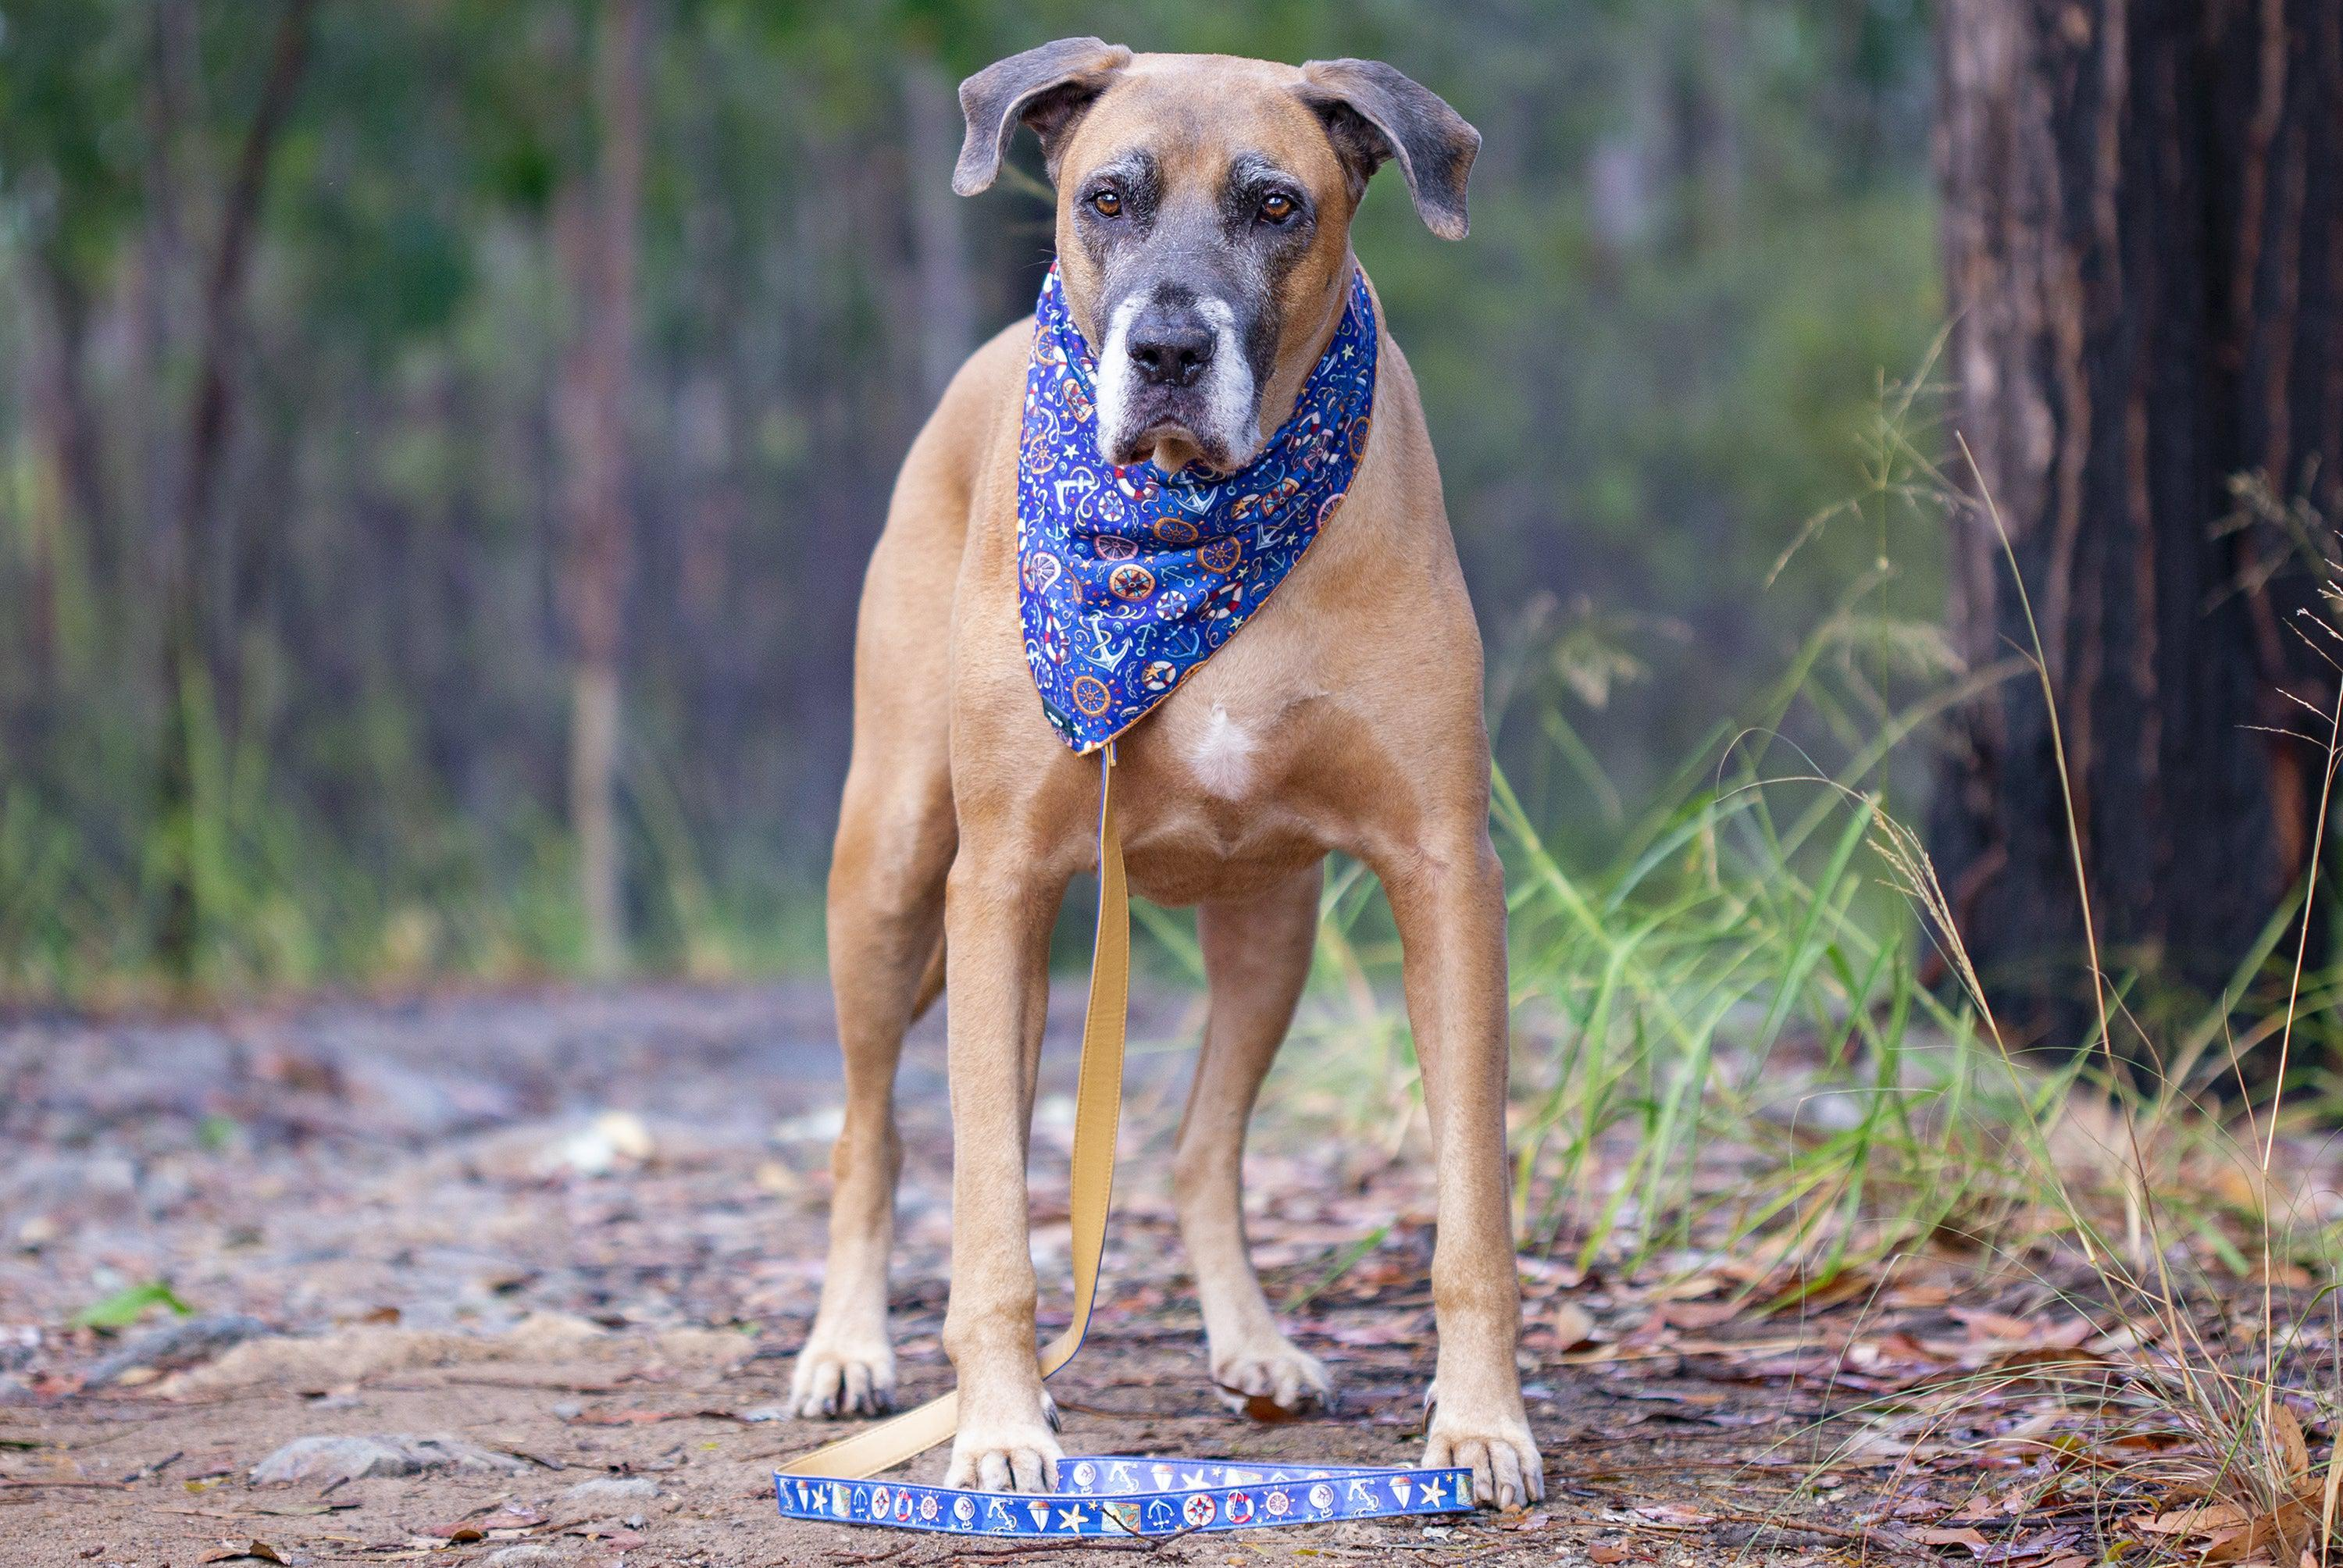 Dog Bandana - Tie Up Bandana - Nautical-Dizzy Dog Collars